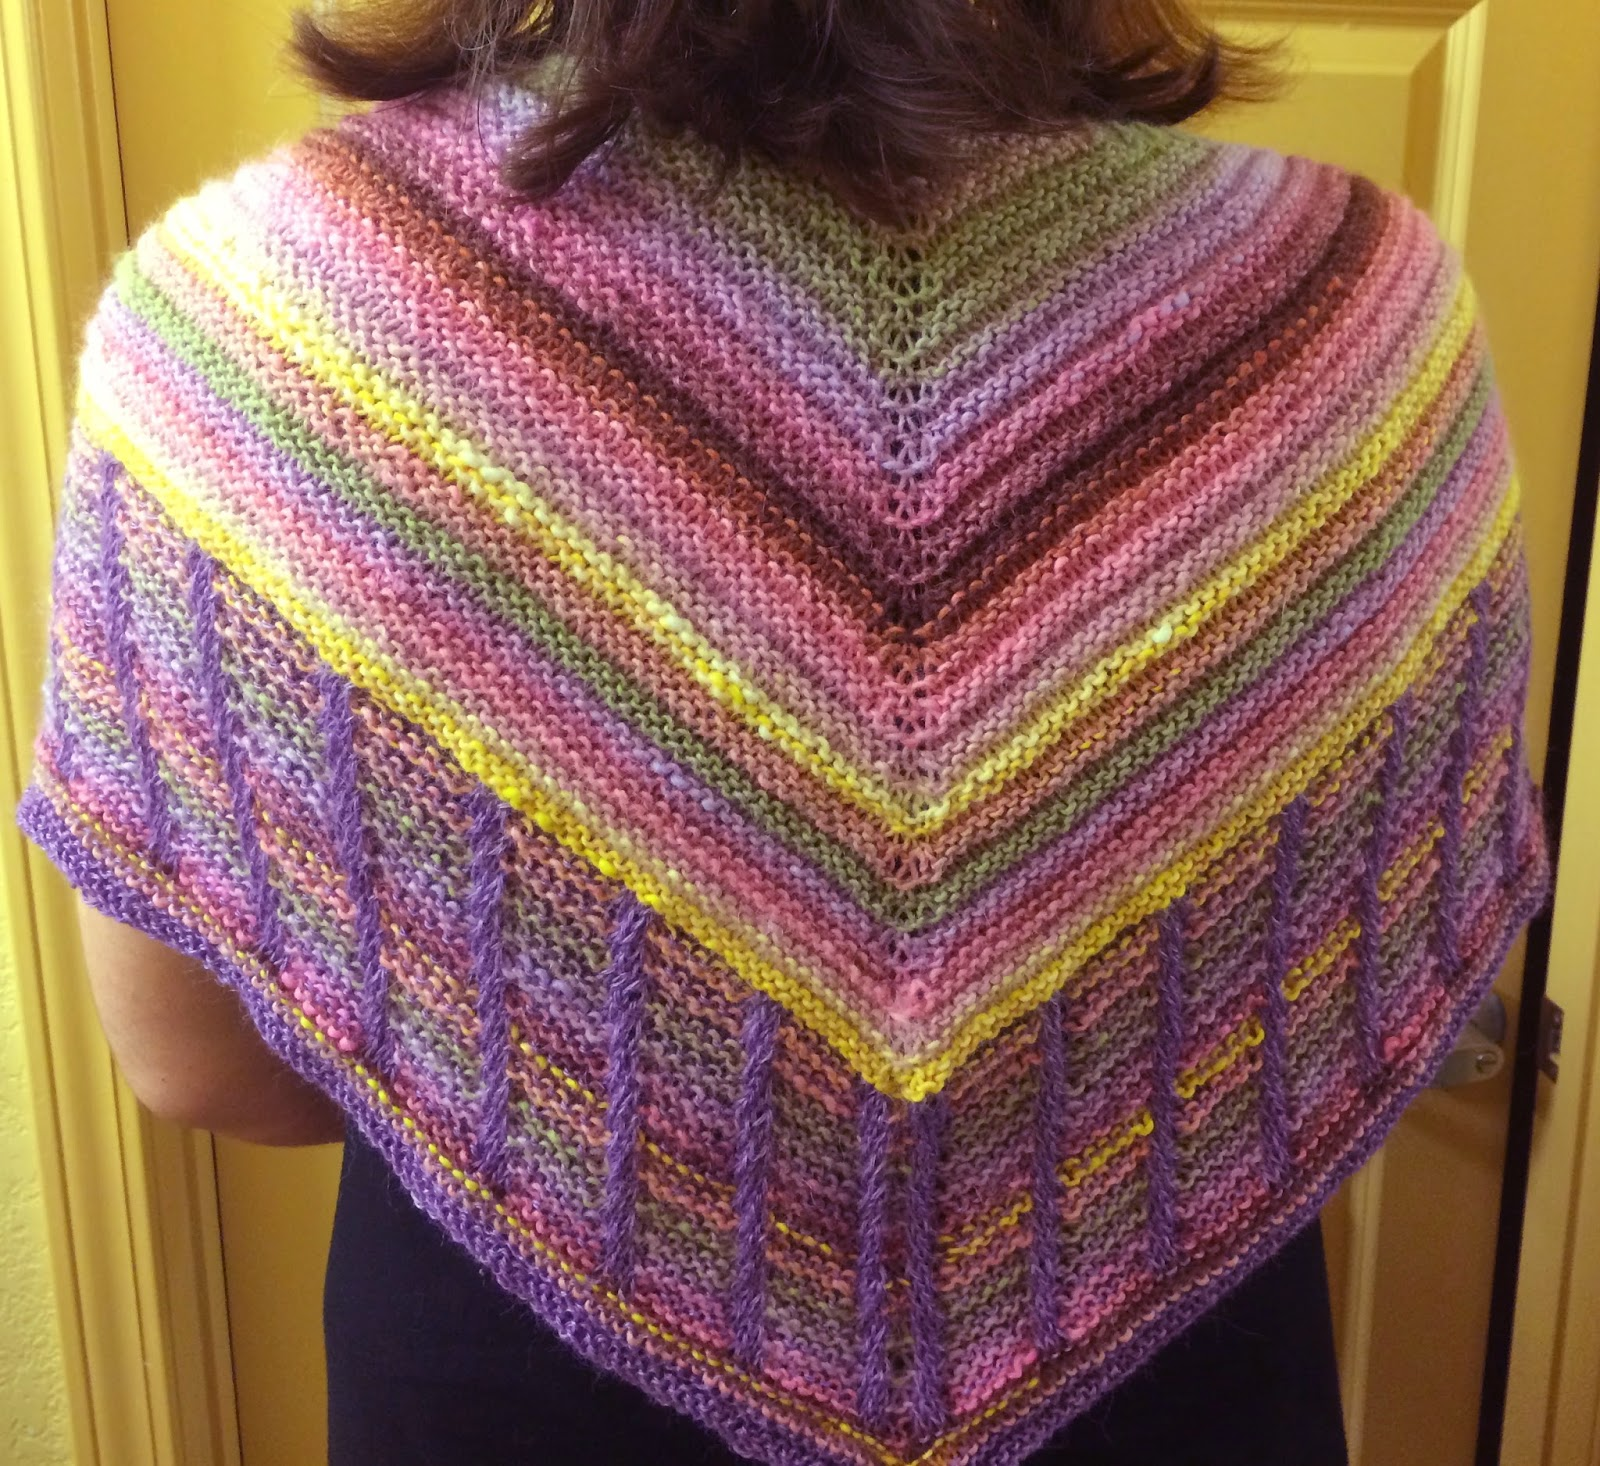 Metalouse Shawl from Knit Nirvana - Done! 9